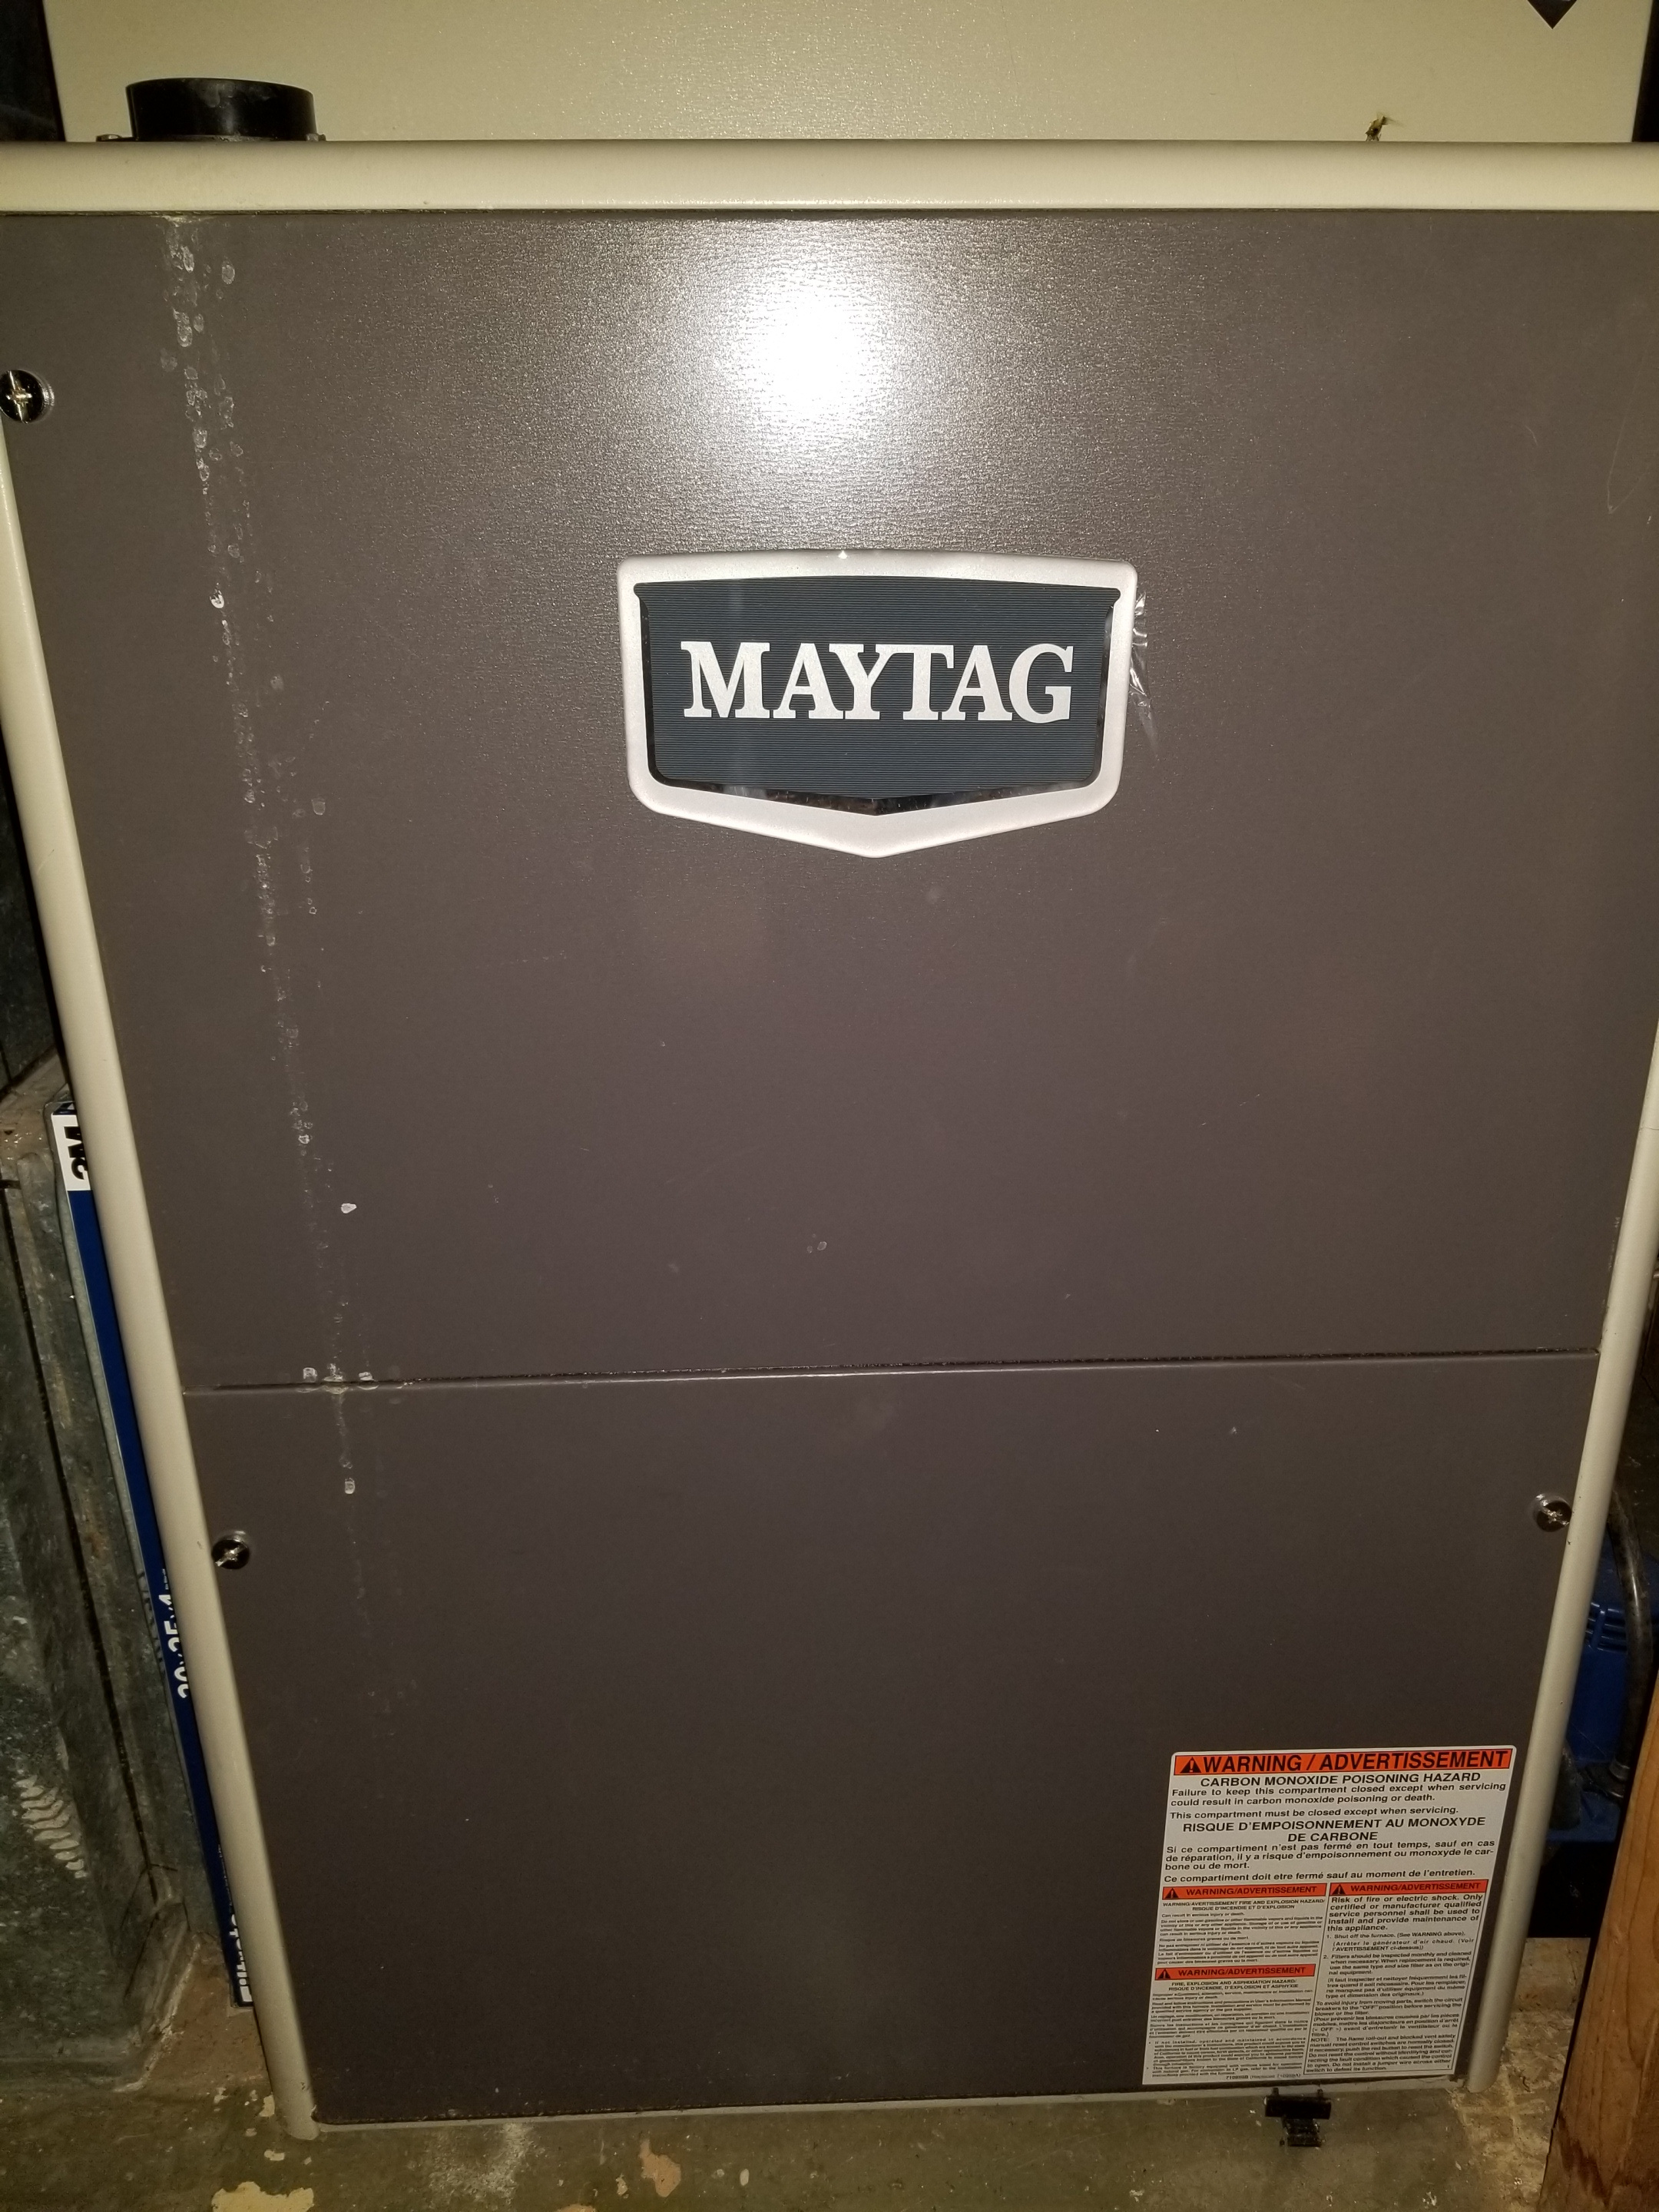 Repaired the Maytag furnace and made adjustments to improve the overall efficiency and life expectancy of the equipment